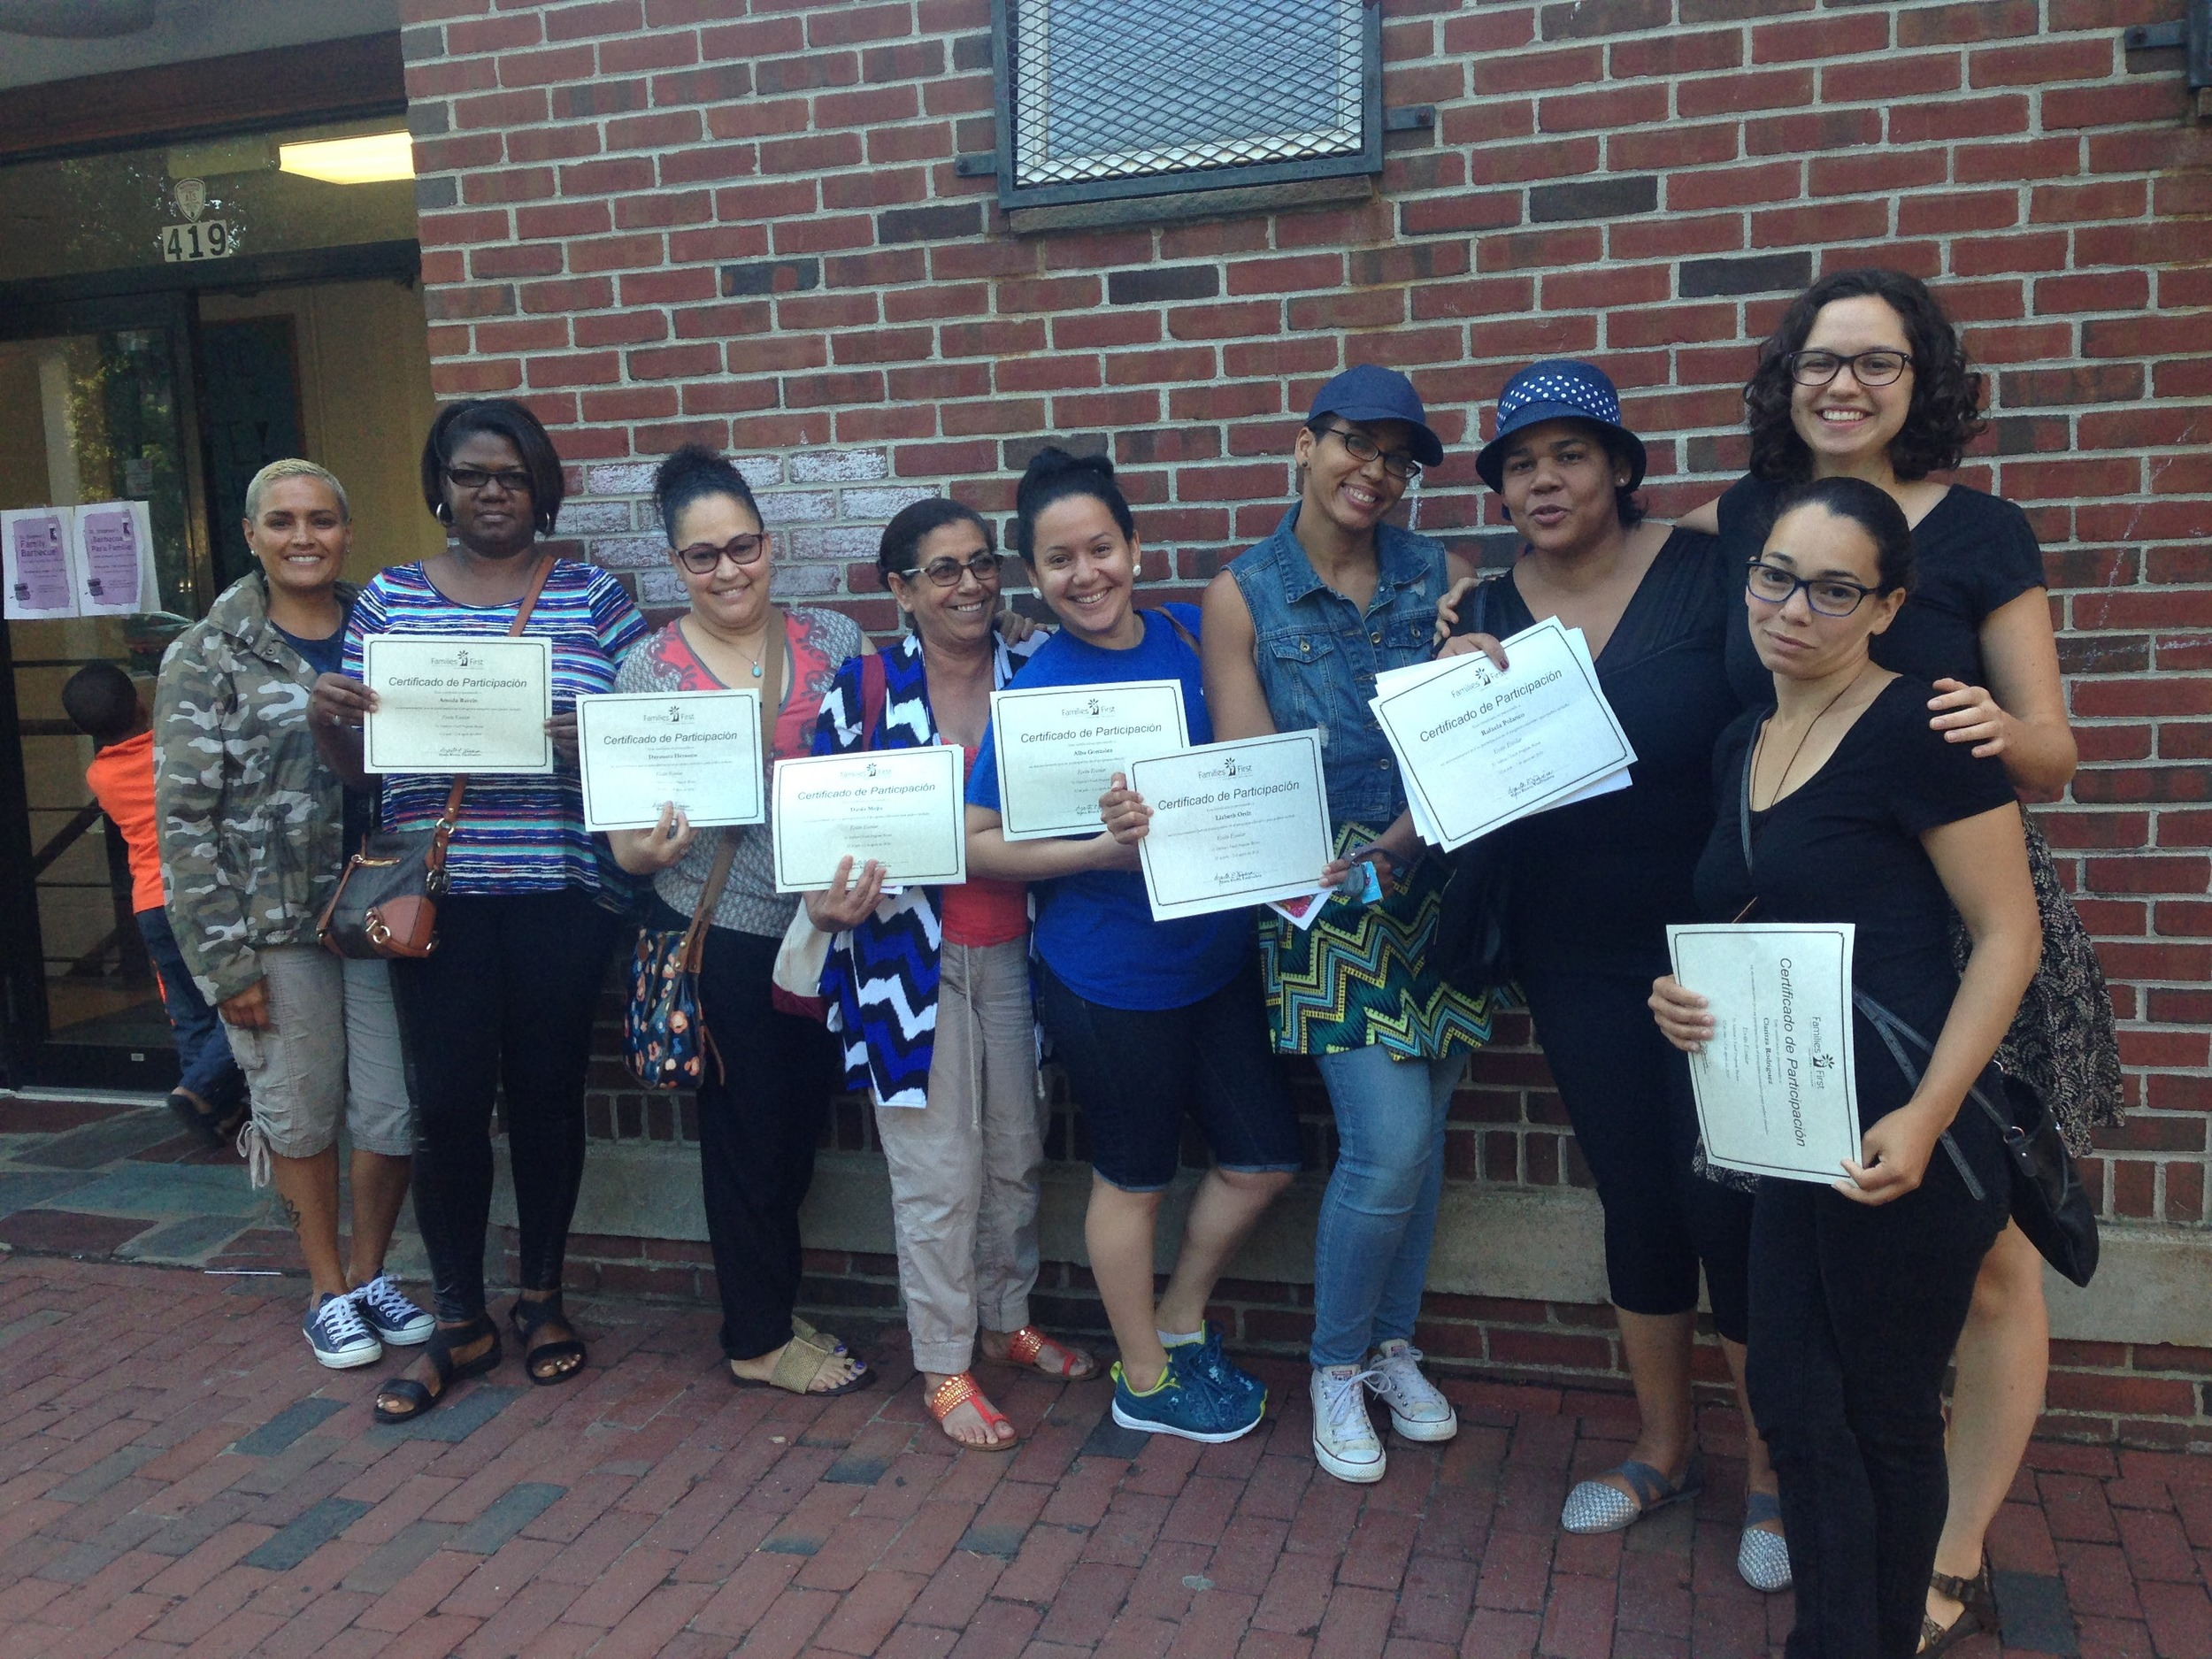 Parents receive certificates after completing a series of workshops in partnership with Families First.